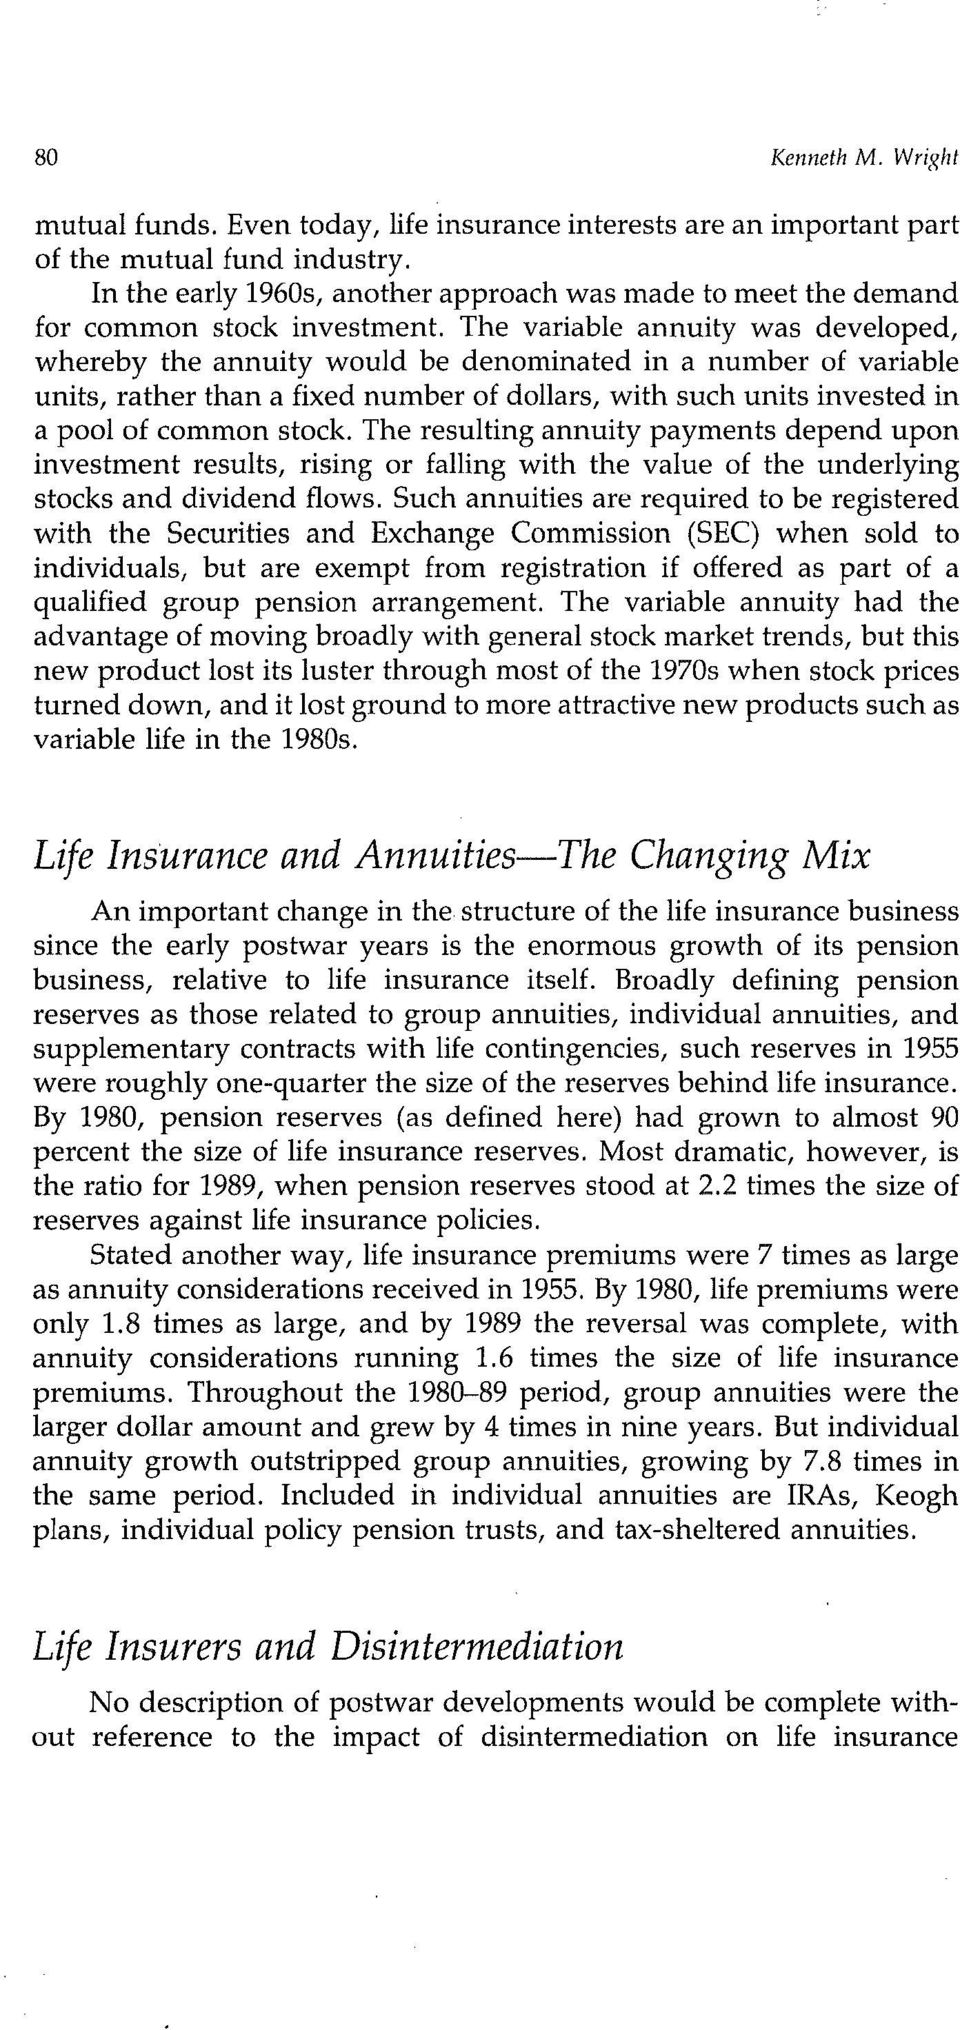 The variable annuity was developed, whereby the annuity would be denominated in a number of variable units, rather than a fixed number of dollars, with such units invested in a pool of common stock.